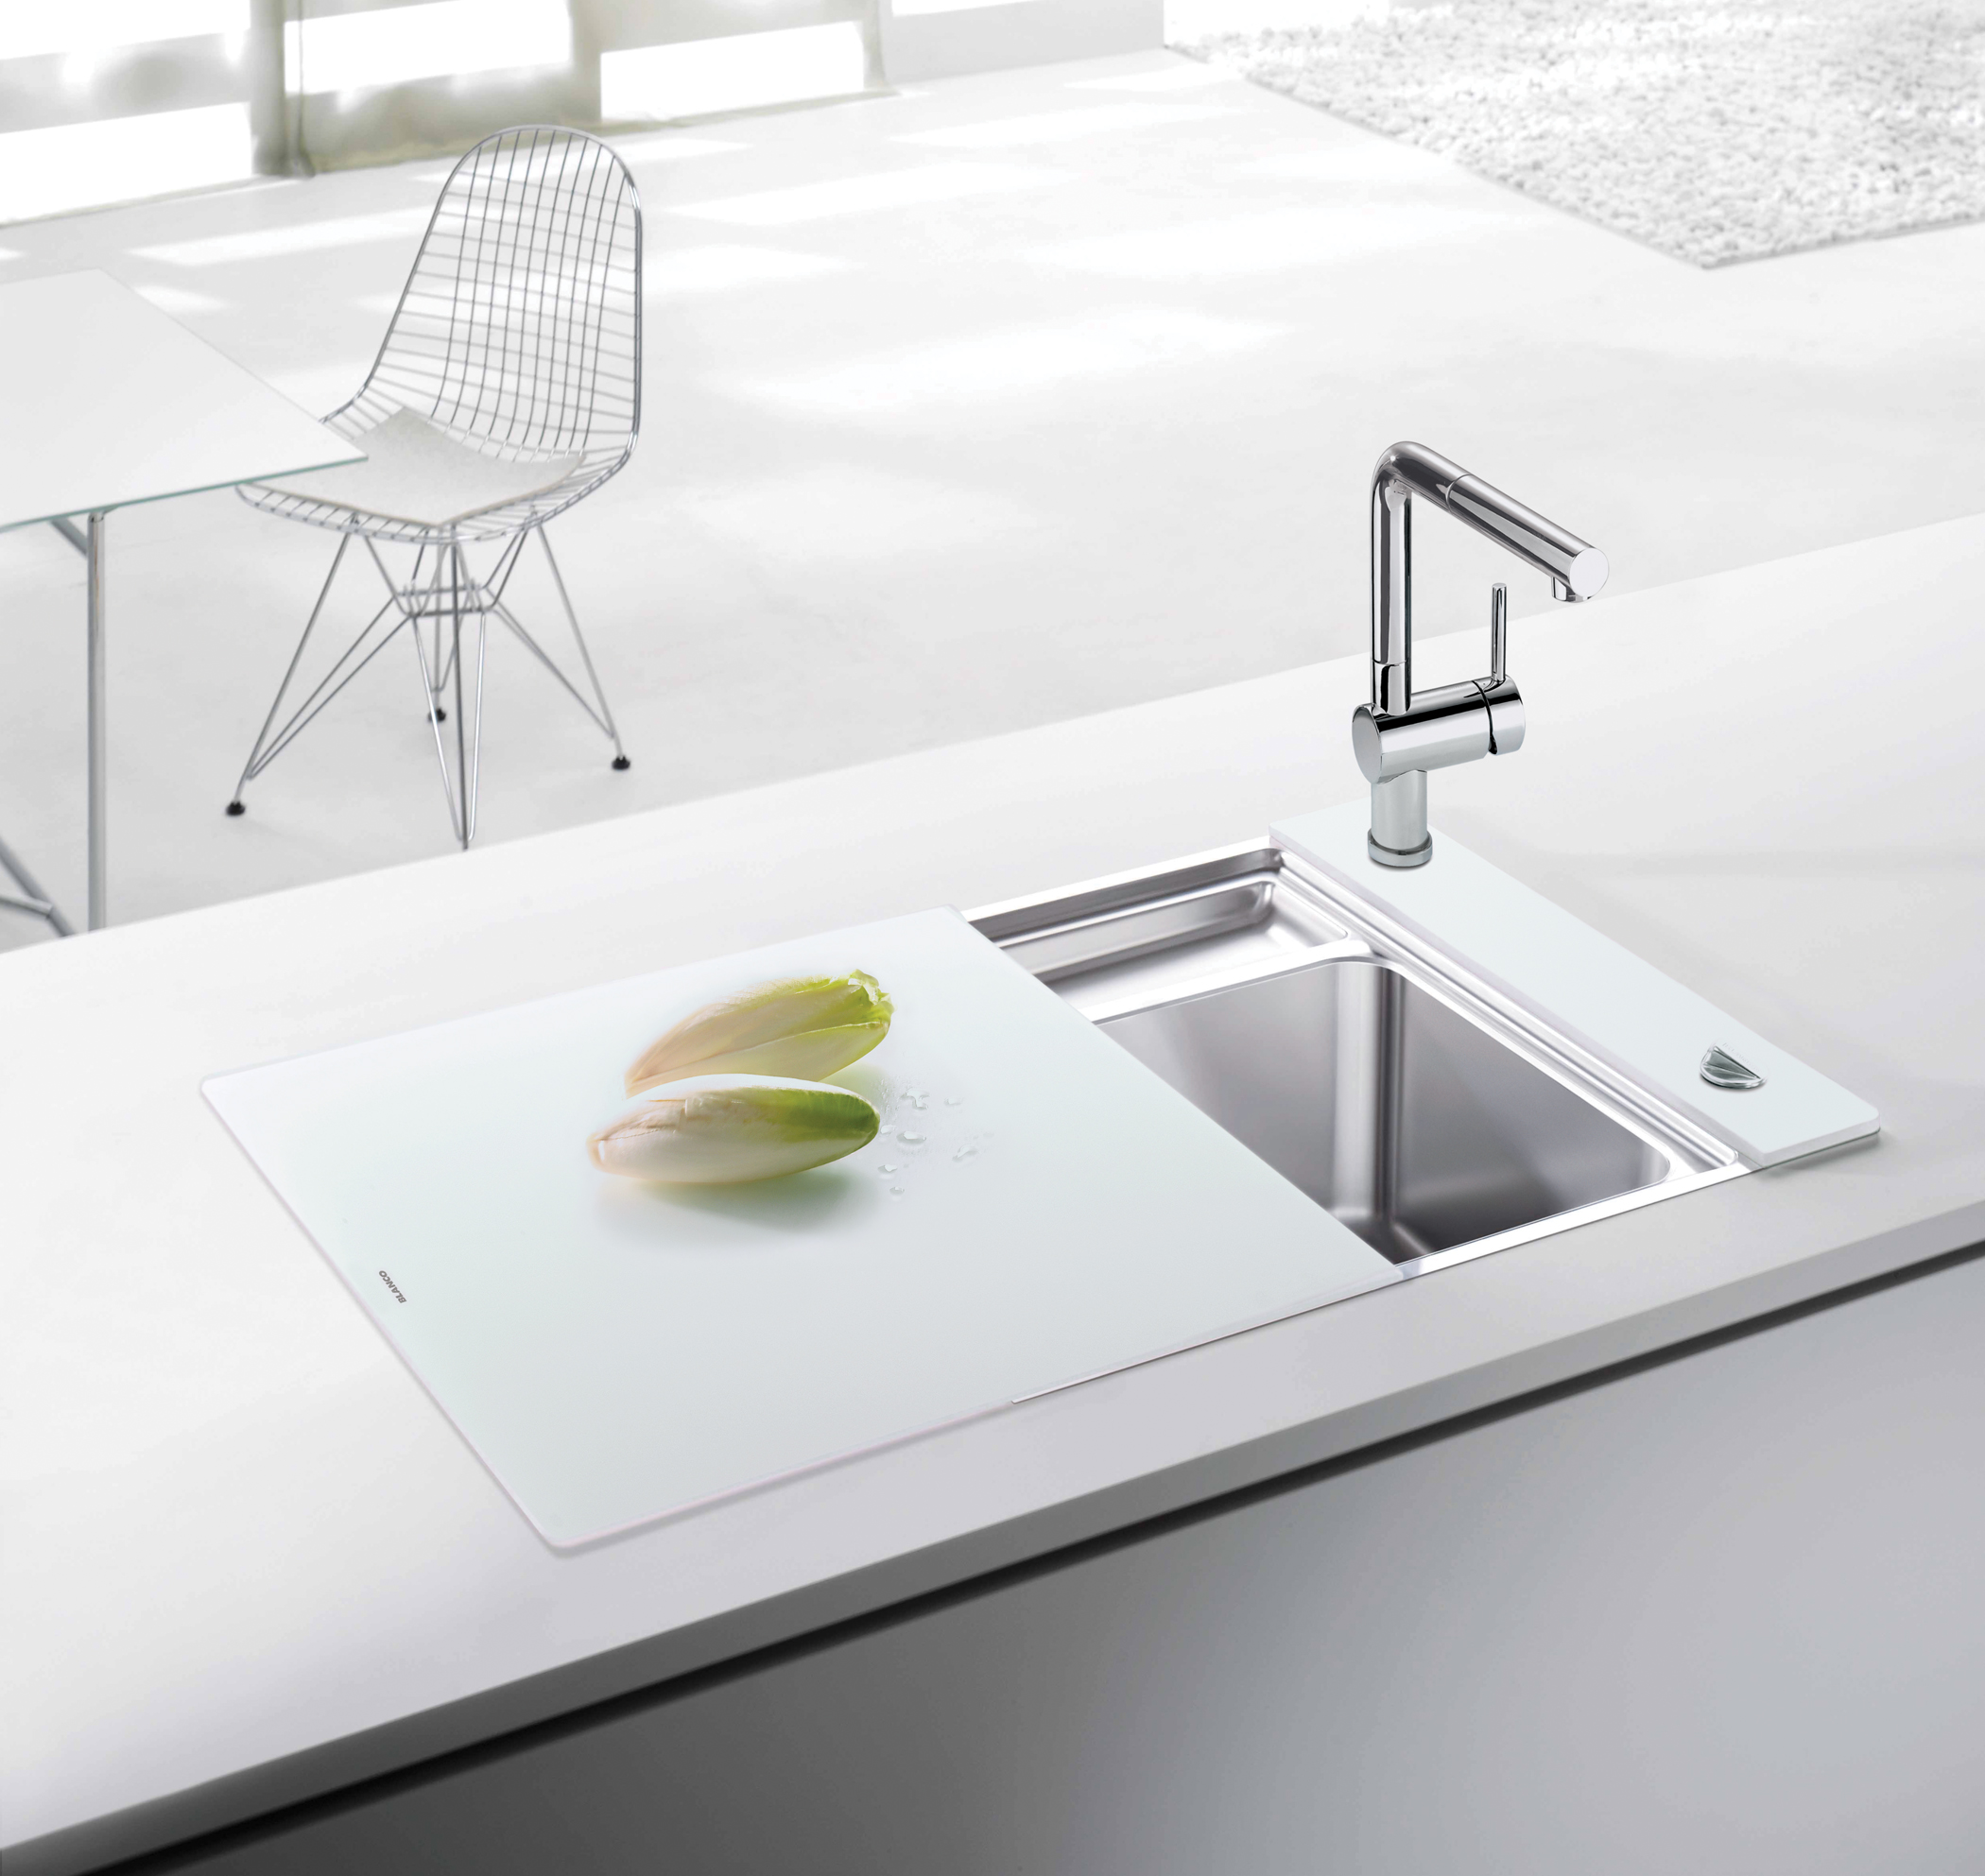 Design of kitchen sink homesfeed sink kitchen table chair workwithnaturefo